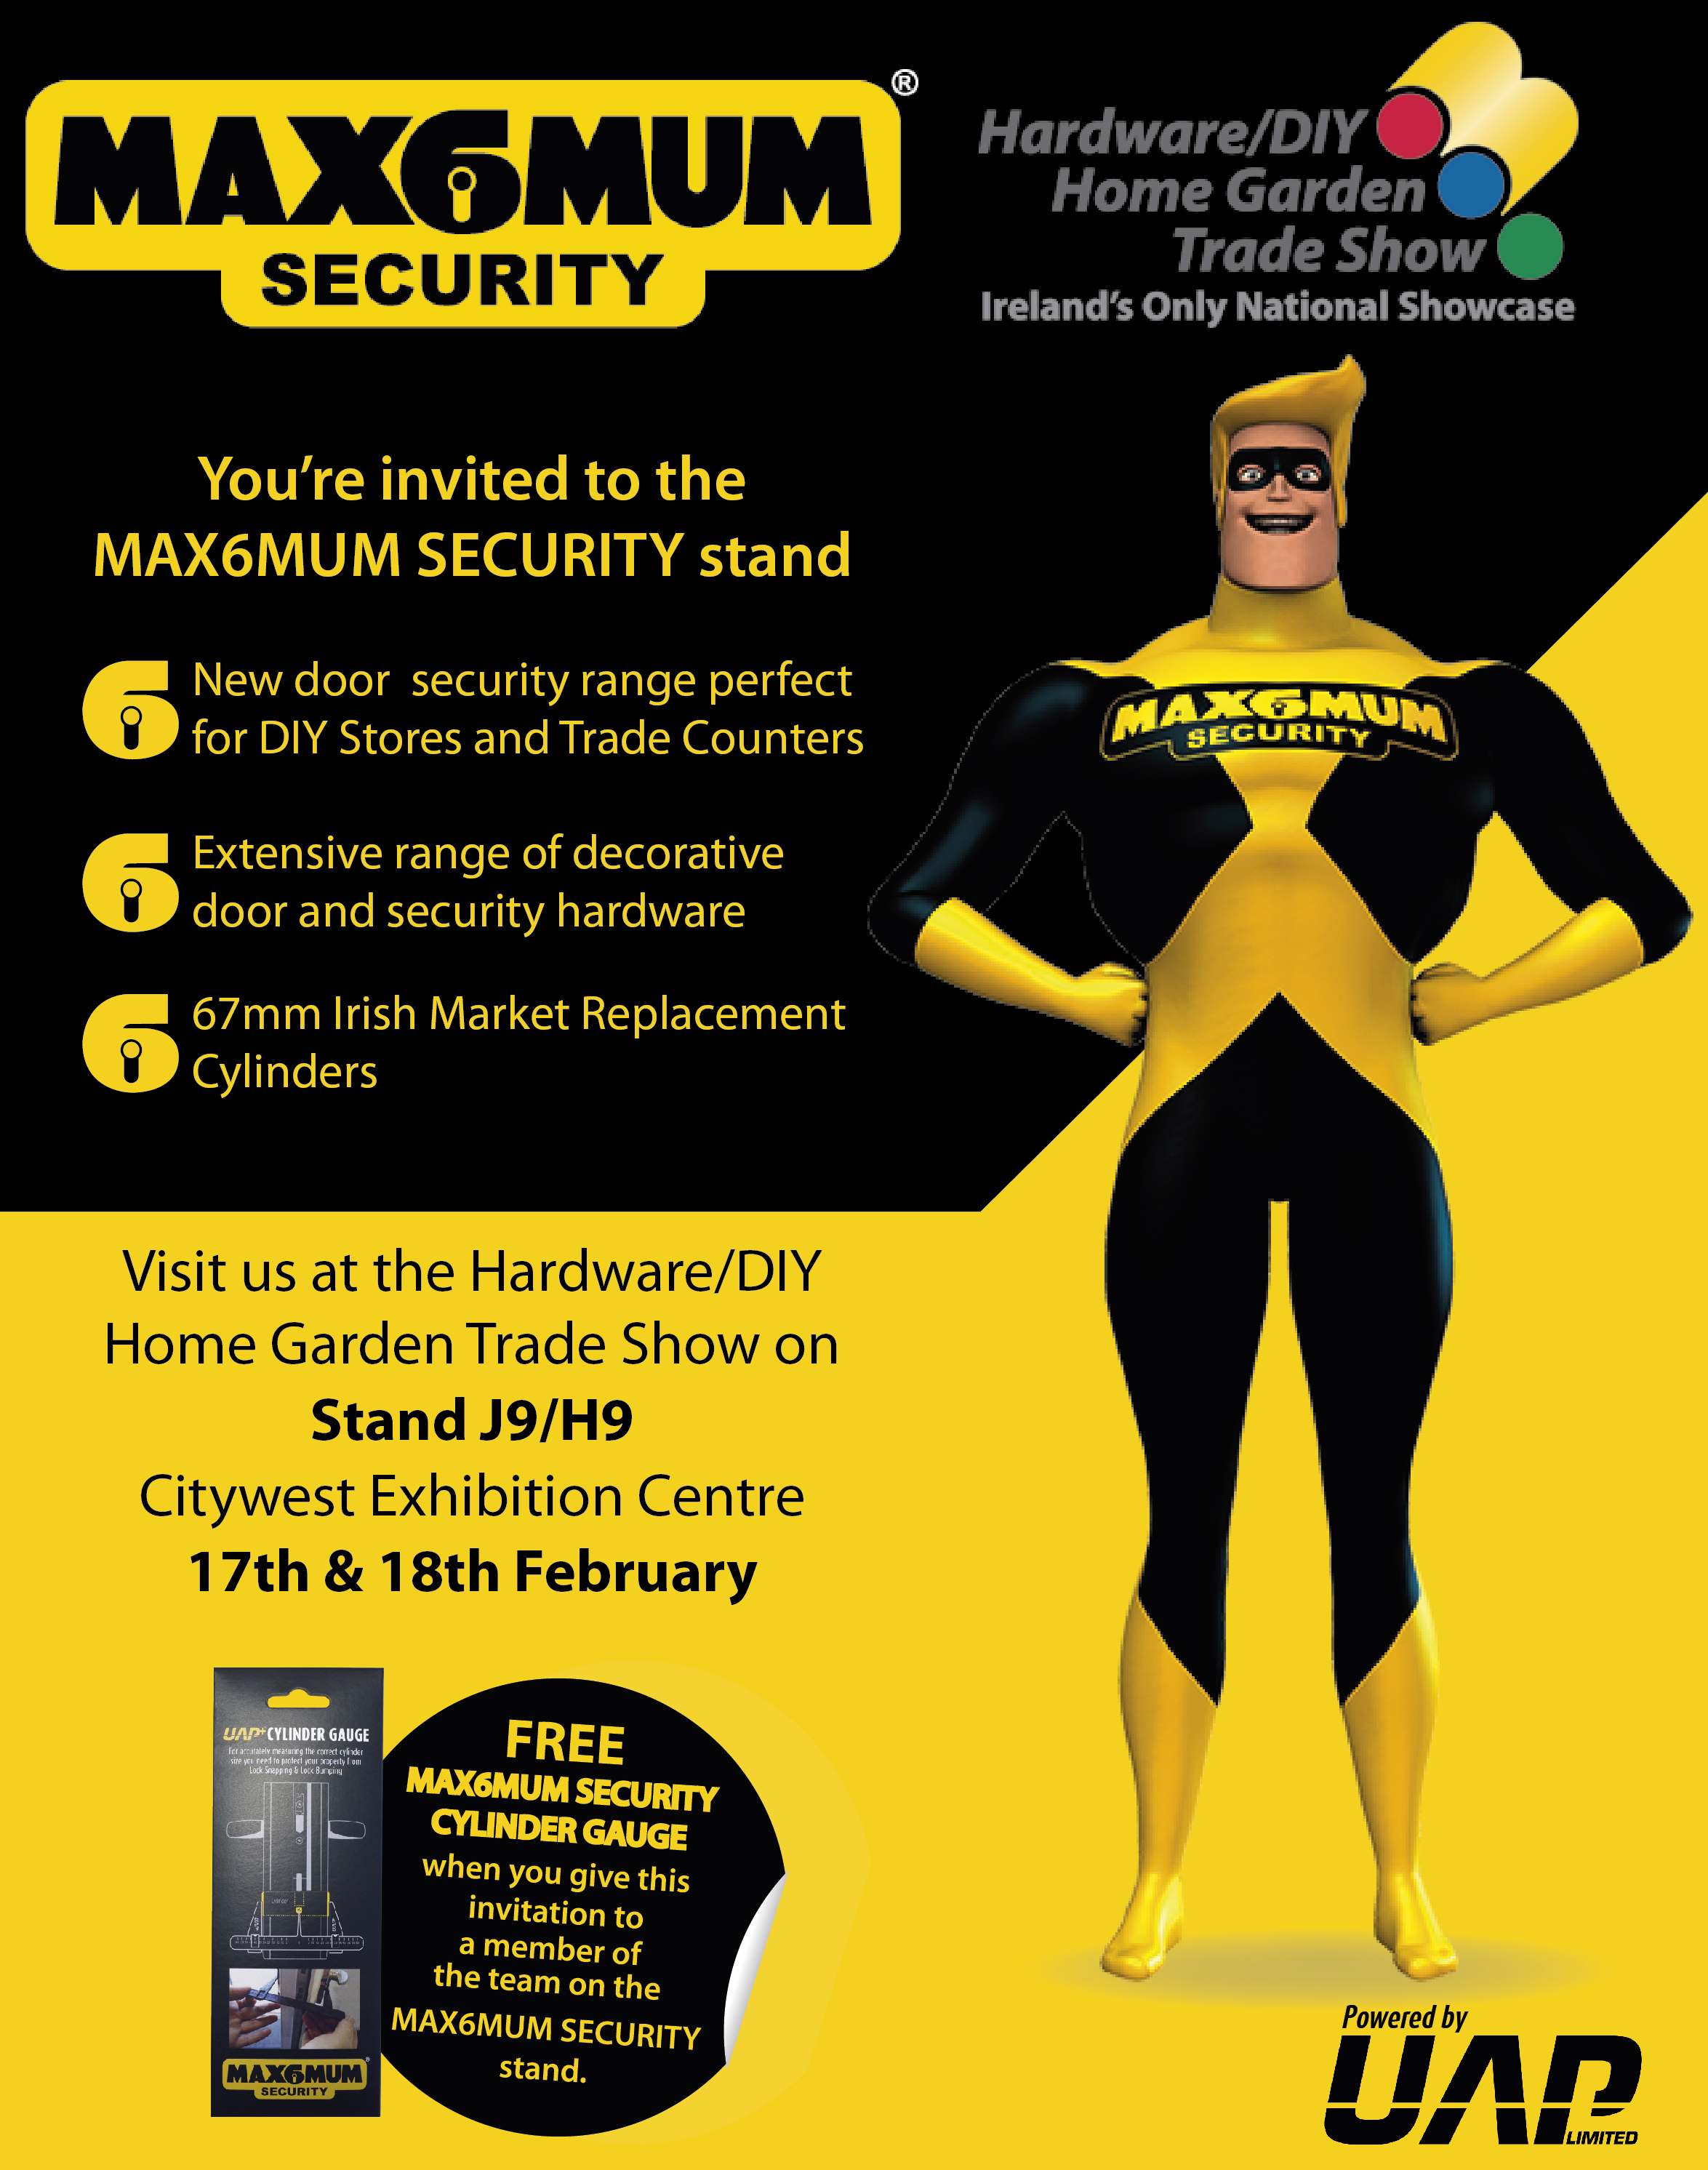 Exhibition Stand Invitation : You re invited to the max mum security stand at irish